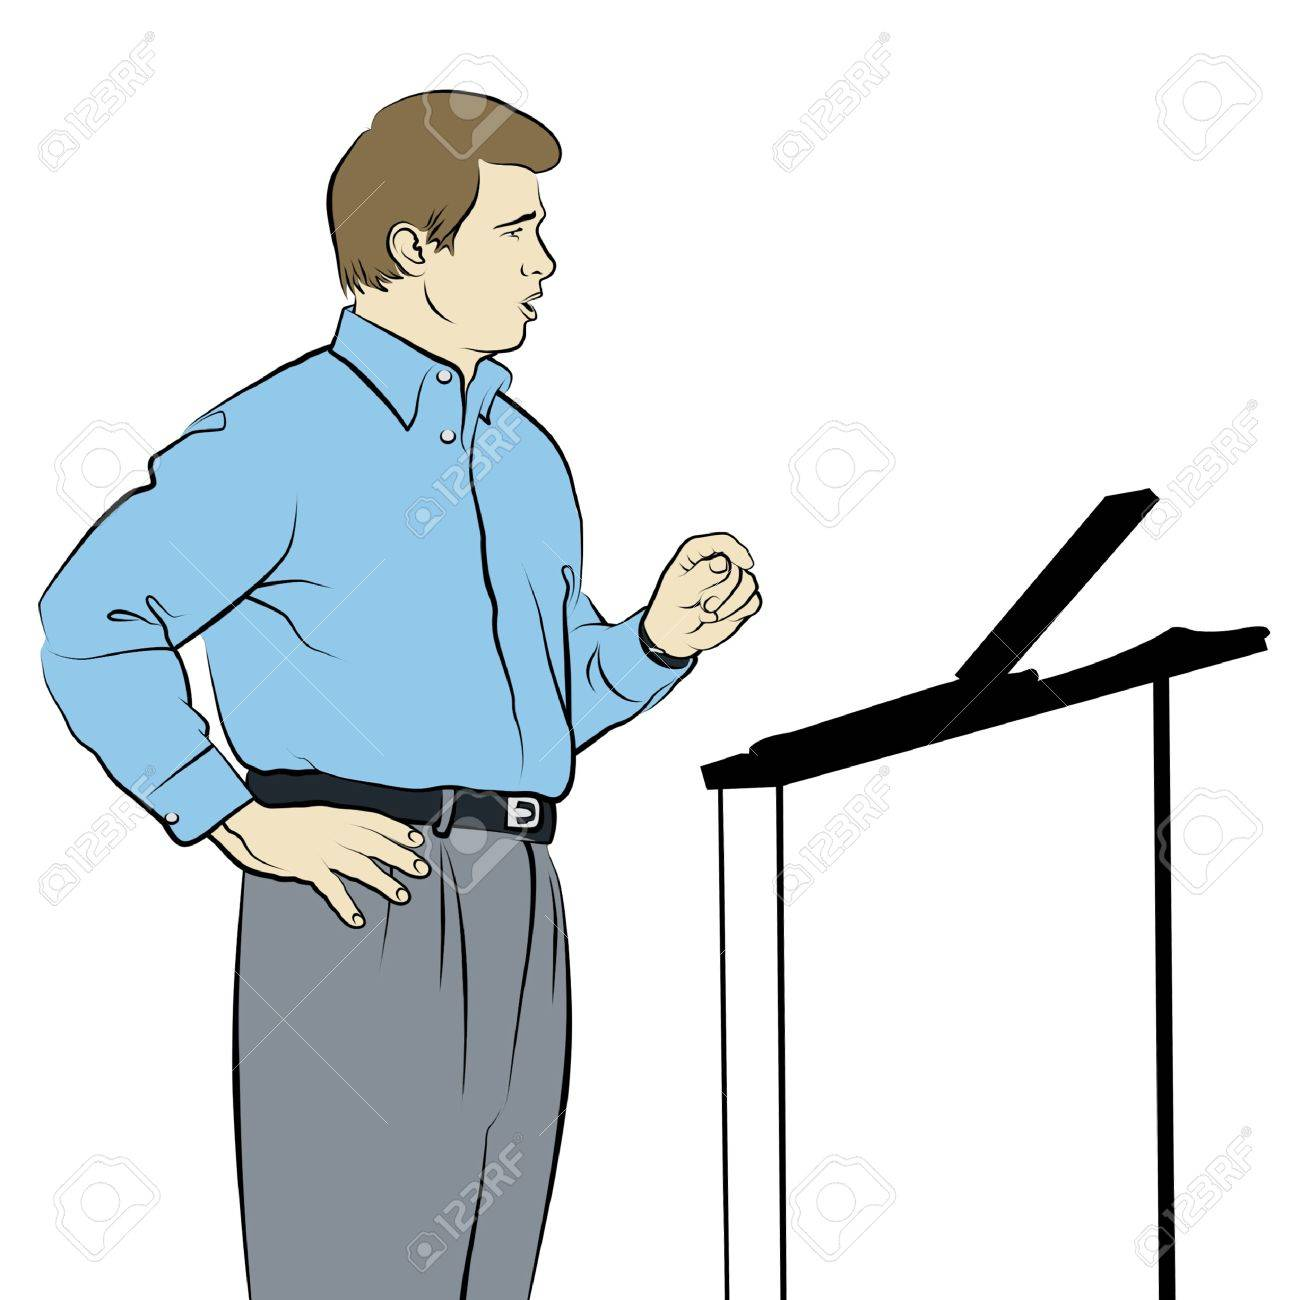 Line drawing of speaker with podium. Stock Photo - 17766729